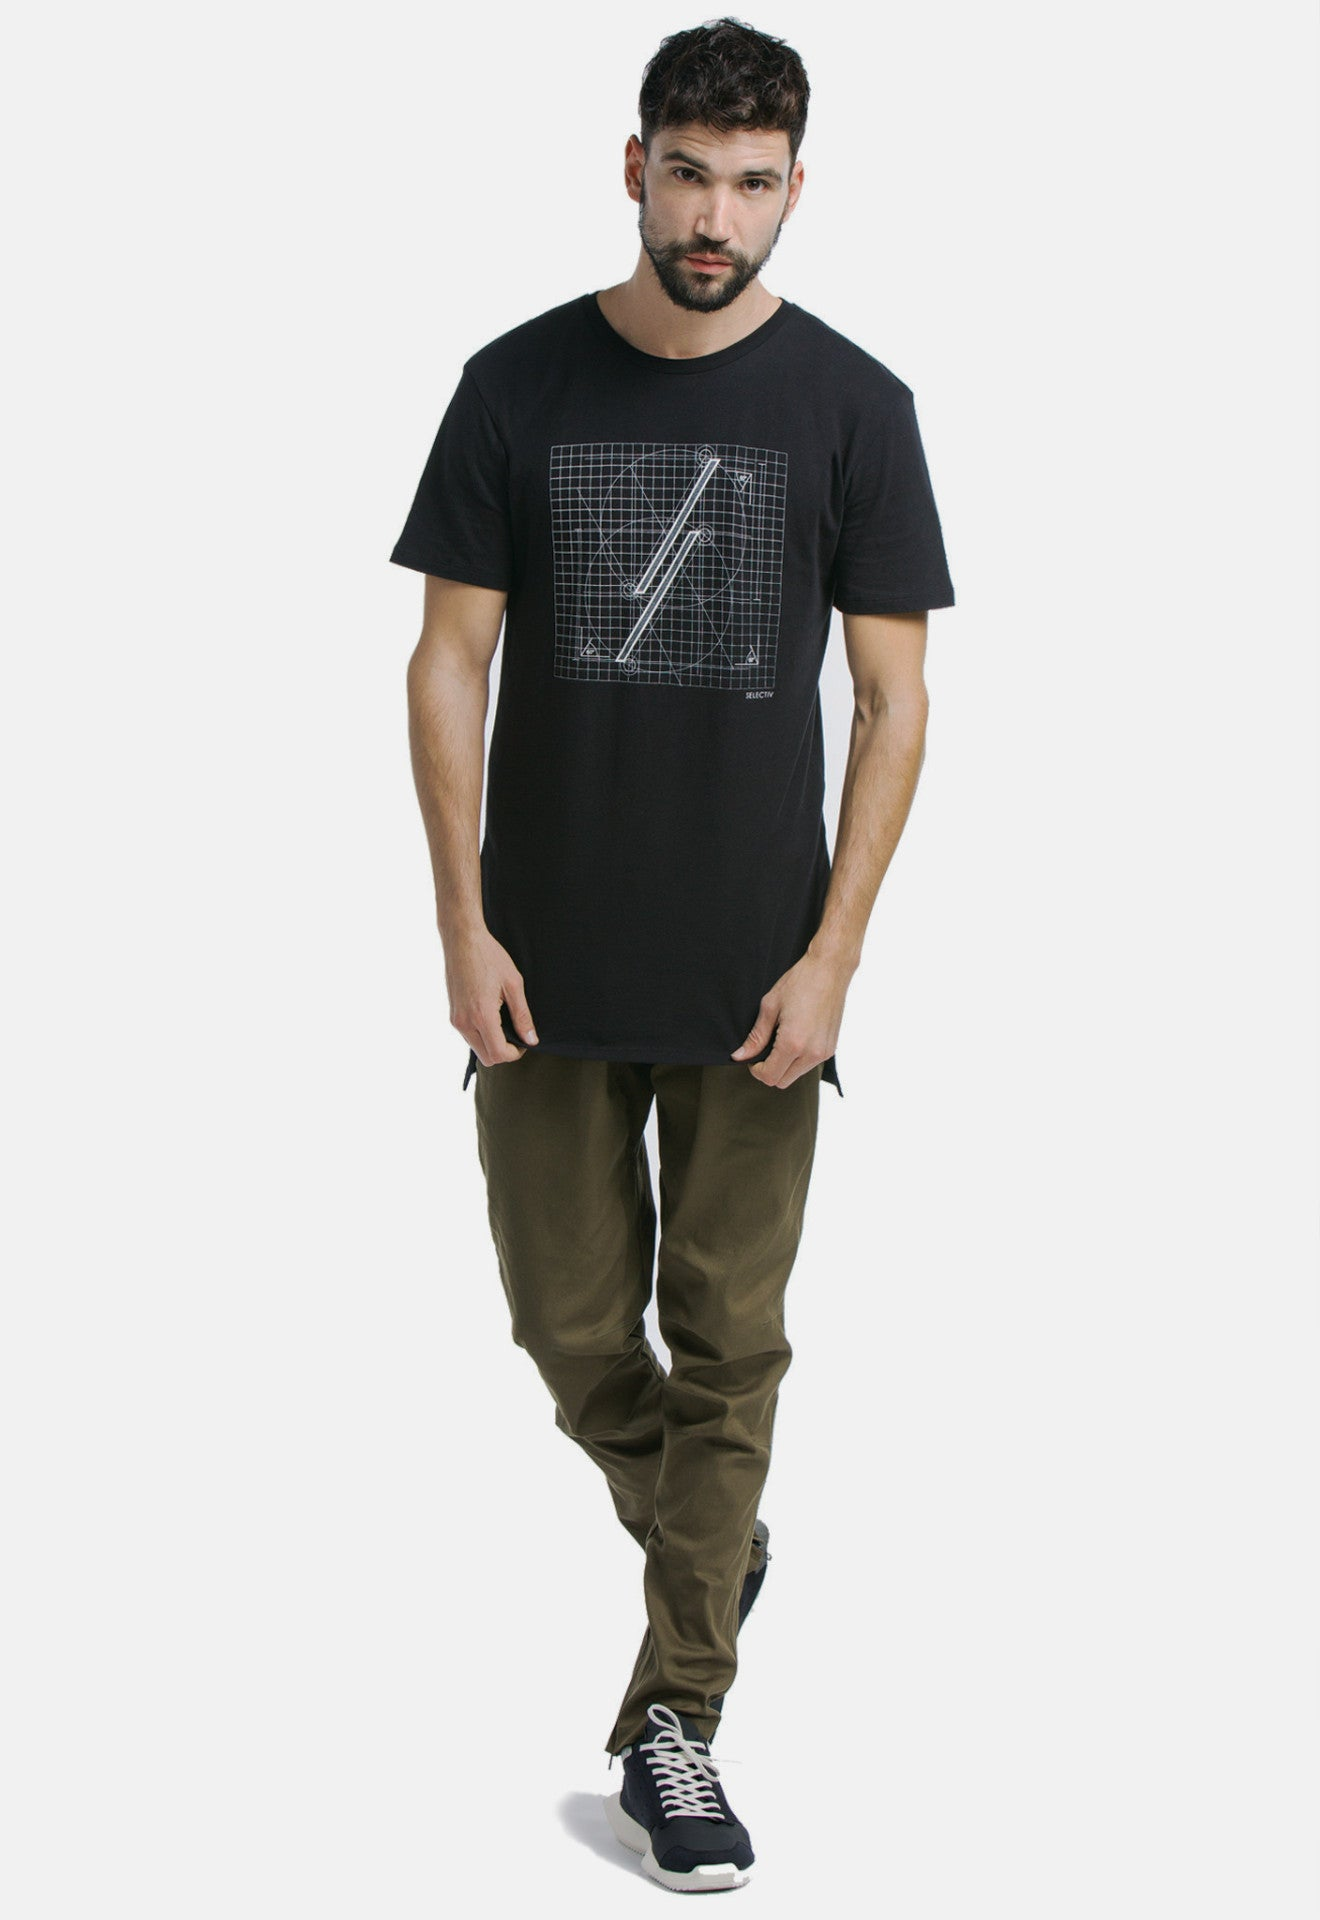 GRAPHICELONGATEDTEE-THEBLUEPRINT(SPACEBLACK)-SELECTIV